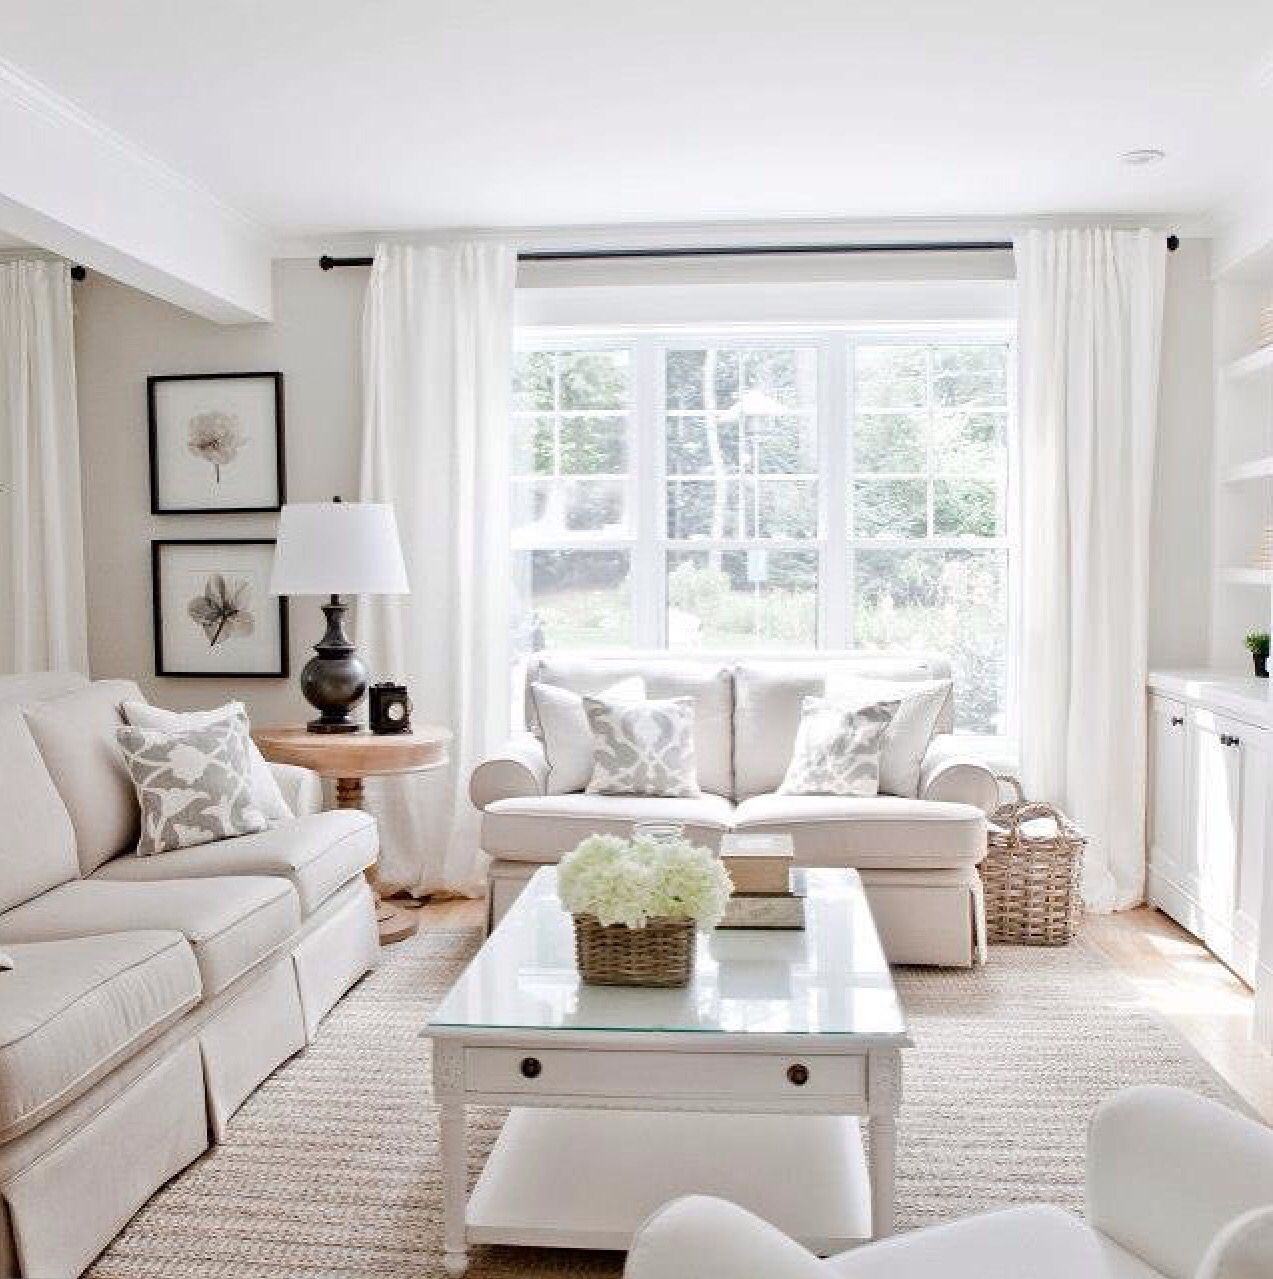 Inspirations For Transitional Living Room: Transitional Design, Modern Furnishings White Interior